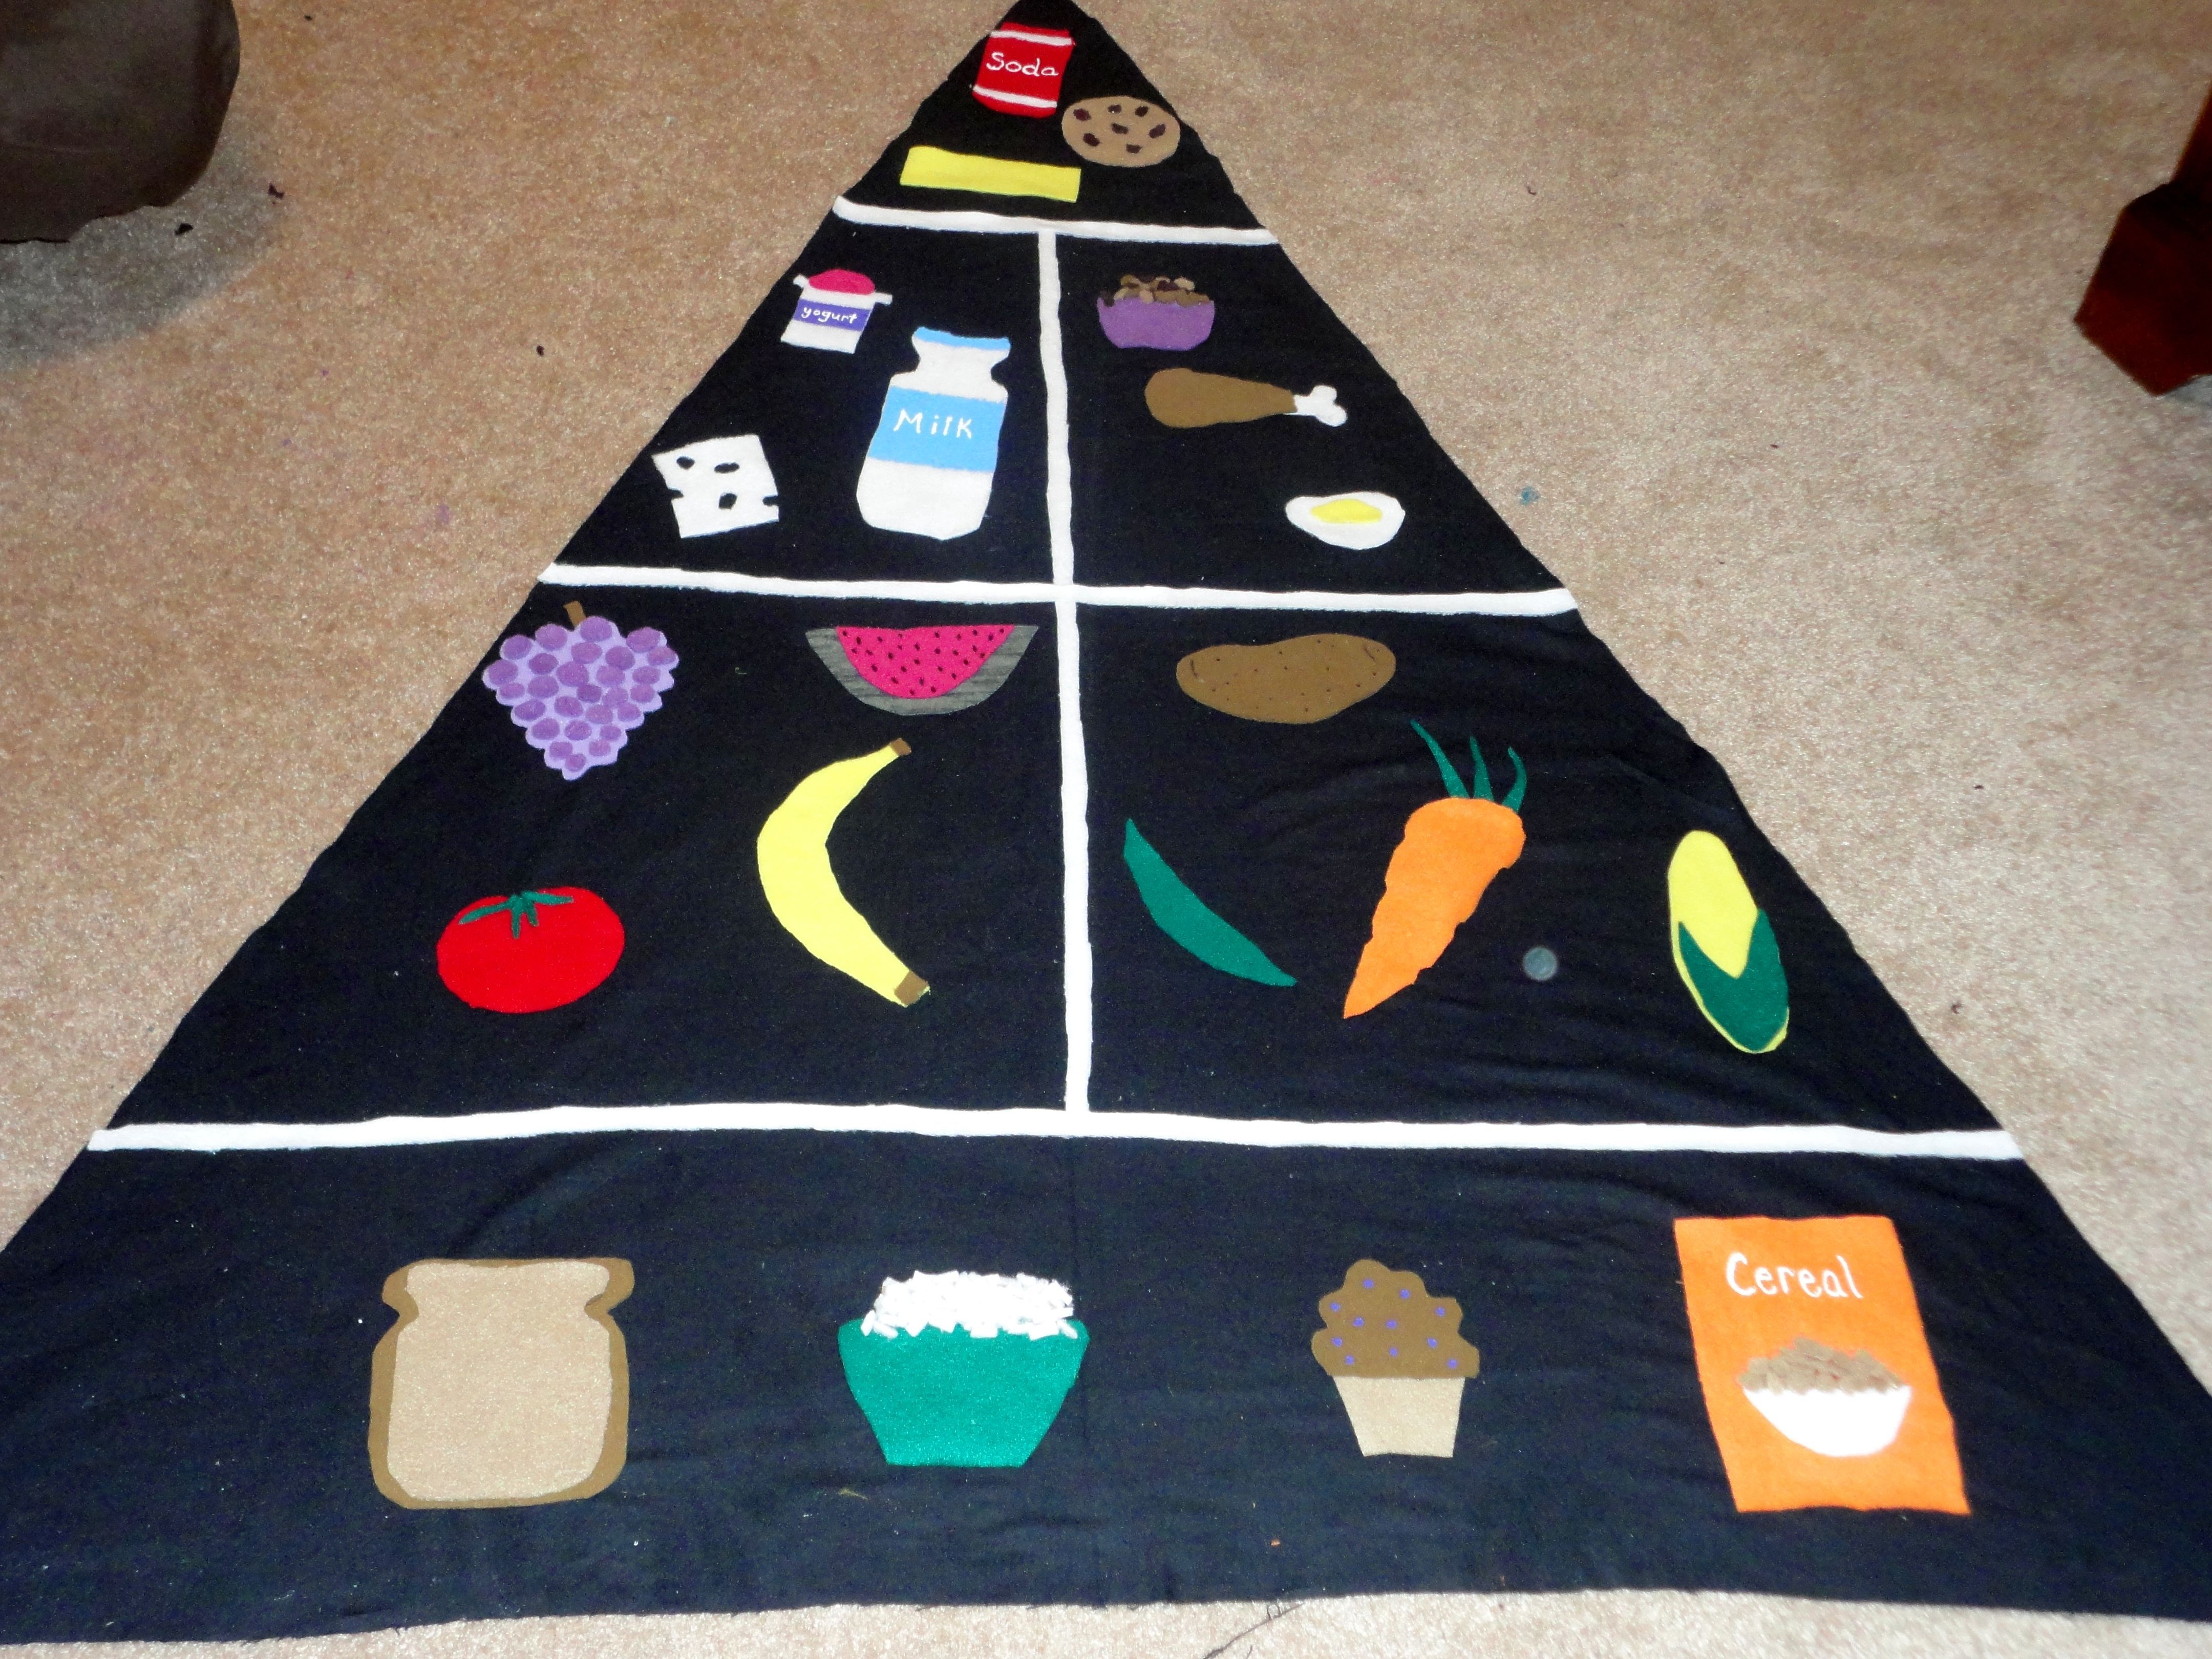 Home Made Felt Food Pyramid To Help Kids Learn The Food Groups And Their Relationship To Happy Teeth Food Groups For Kids Food Art For Kids Food Pyramid [ 3240 x 4320 Pixel ]